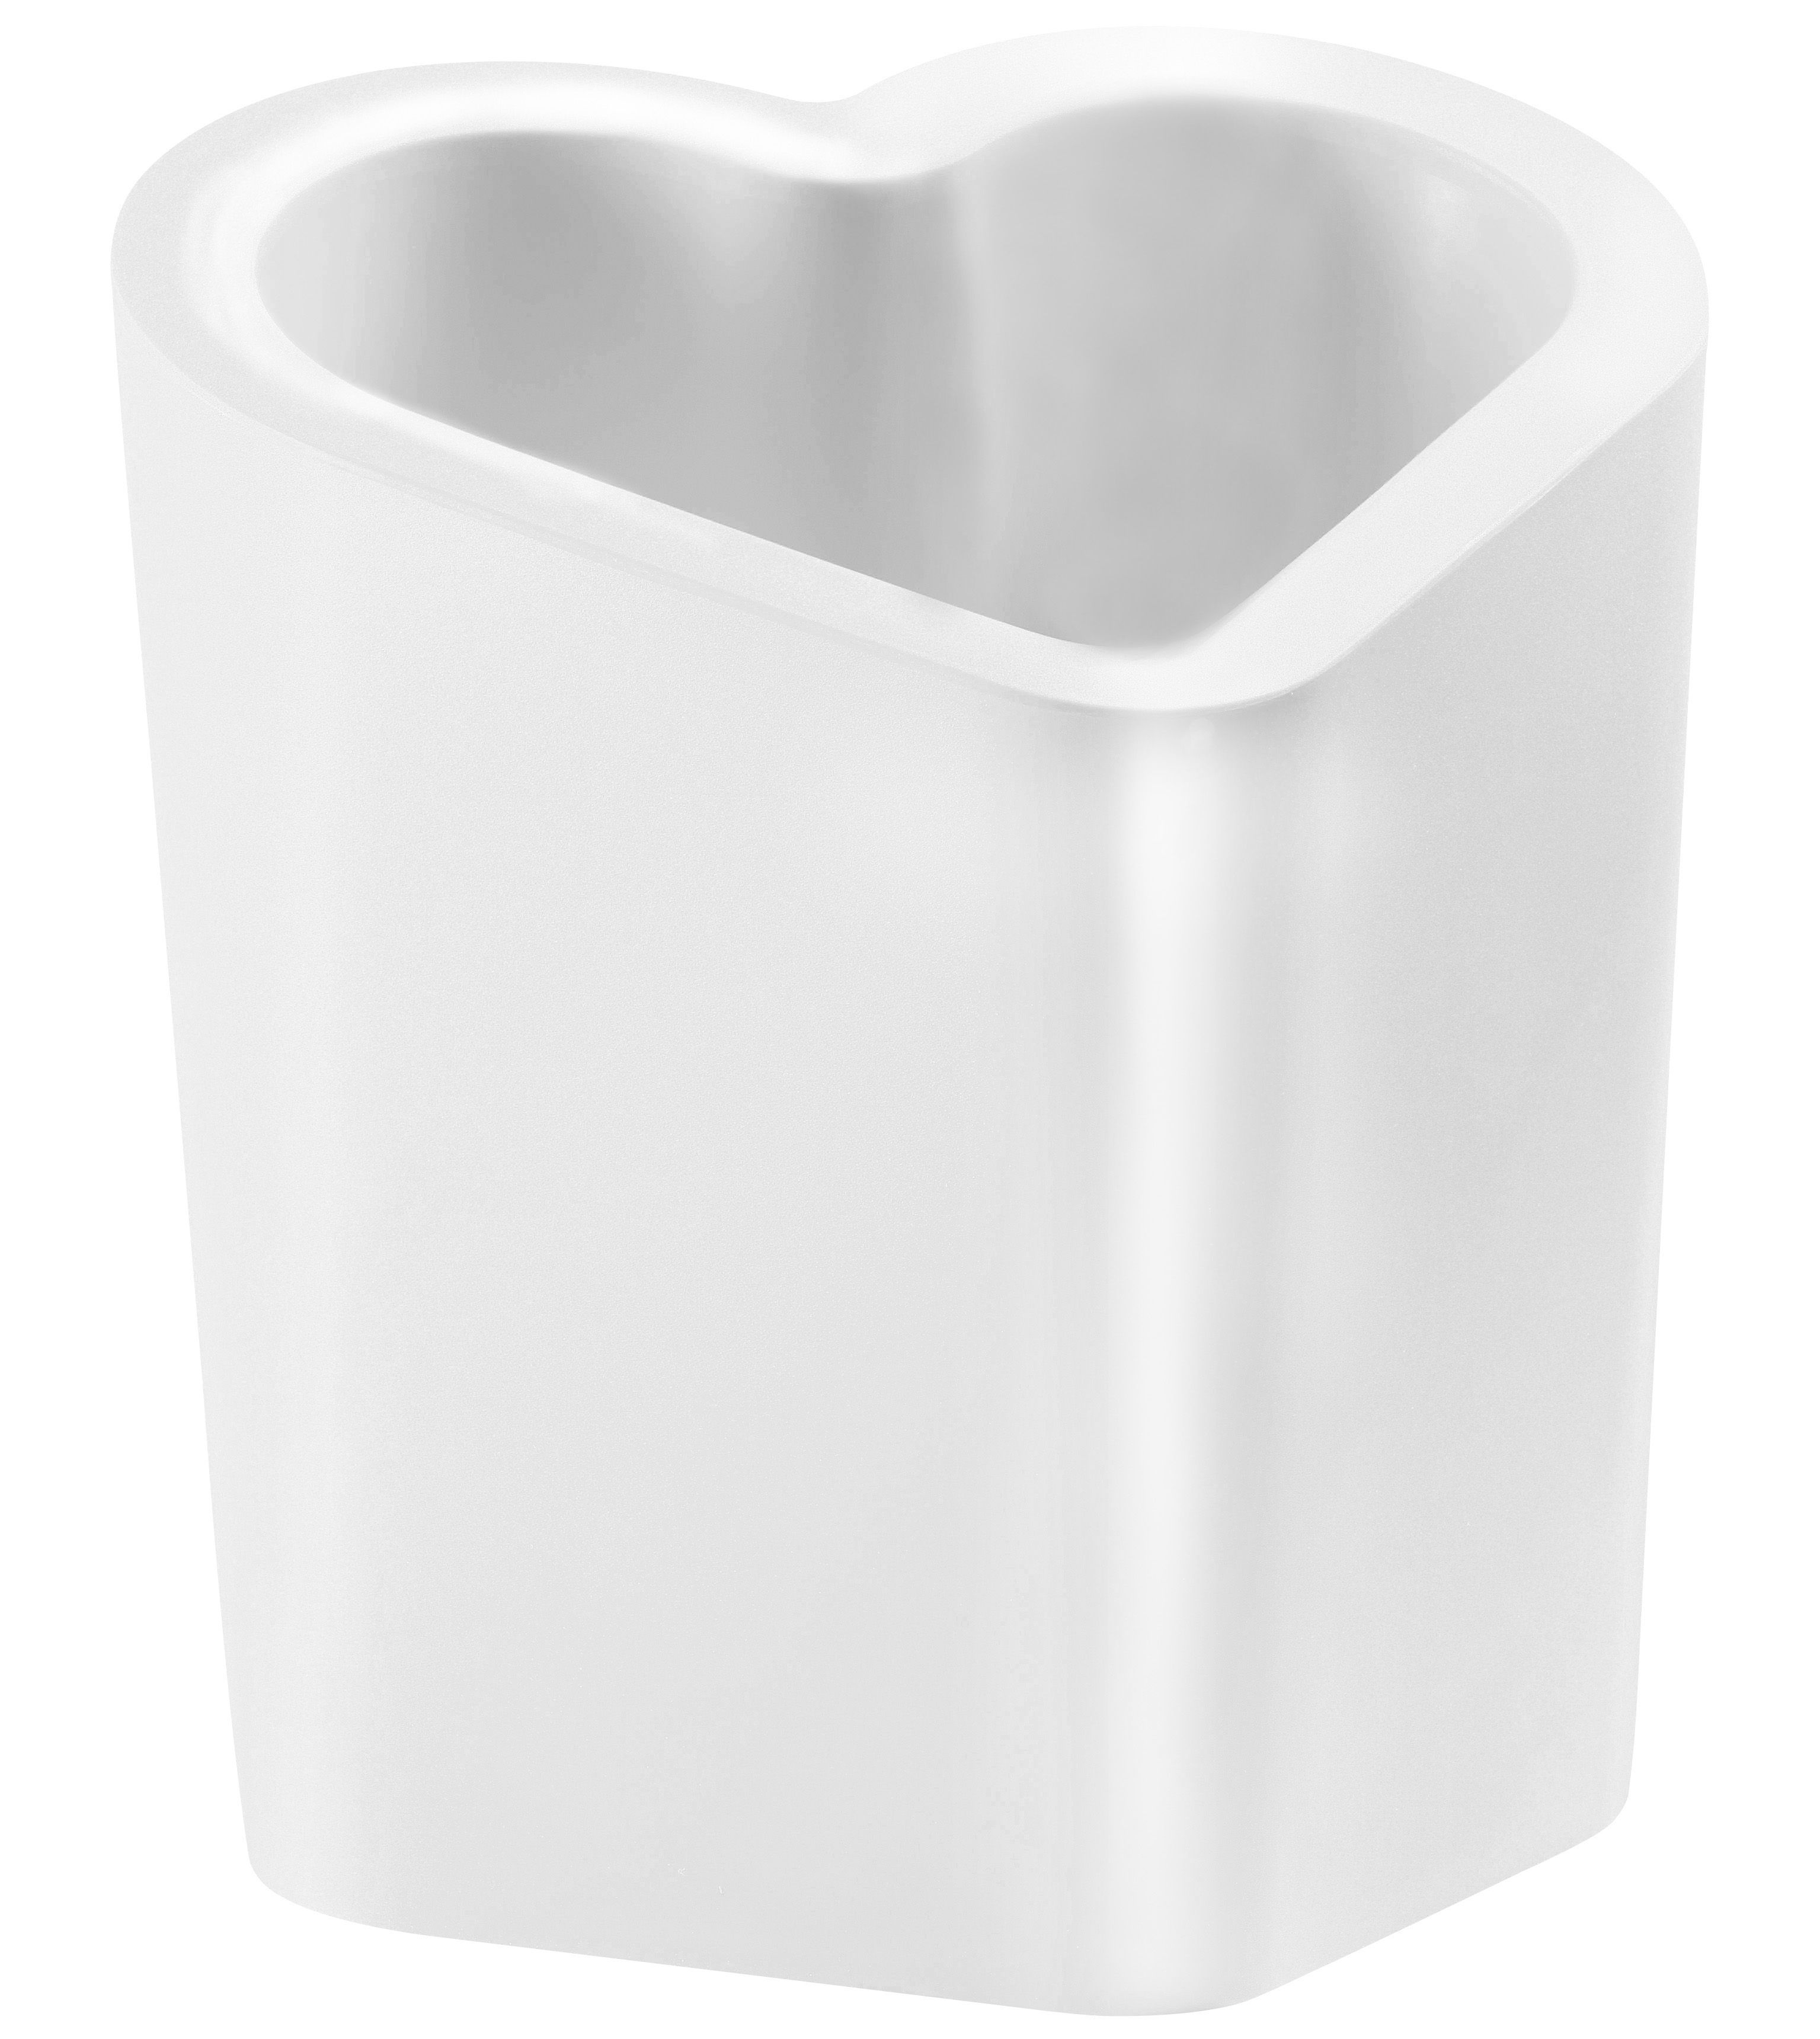 Outdoor - Pots & Plants - Mon Amour Flowerpot - / lacquered version by Slide - Laquered white - Polythene